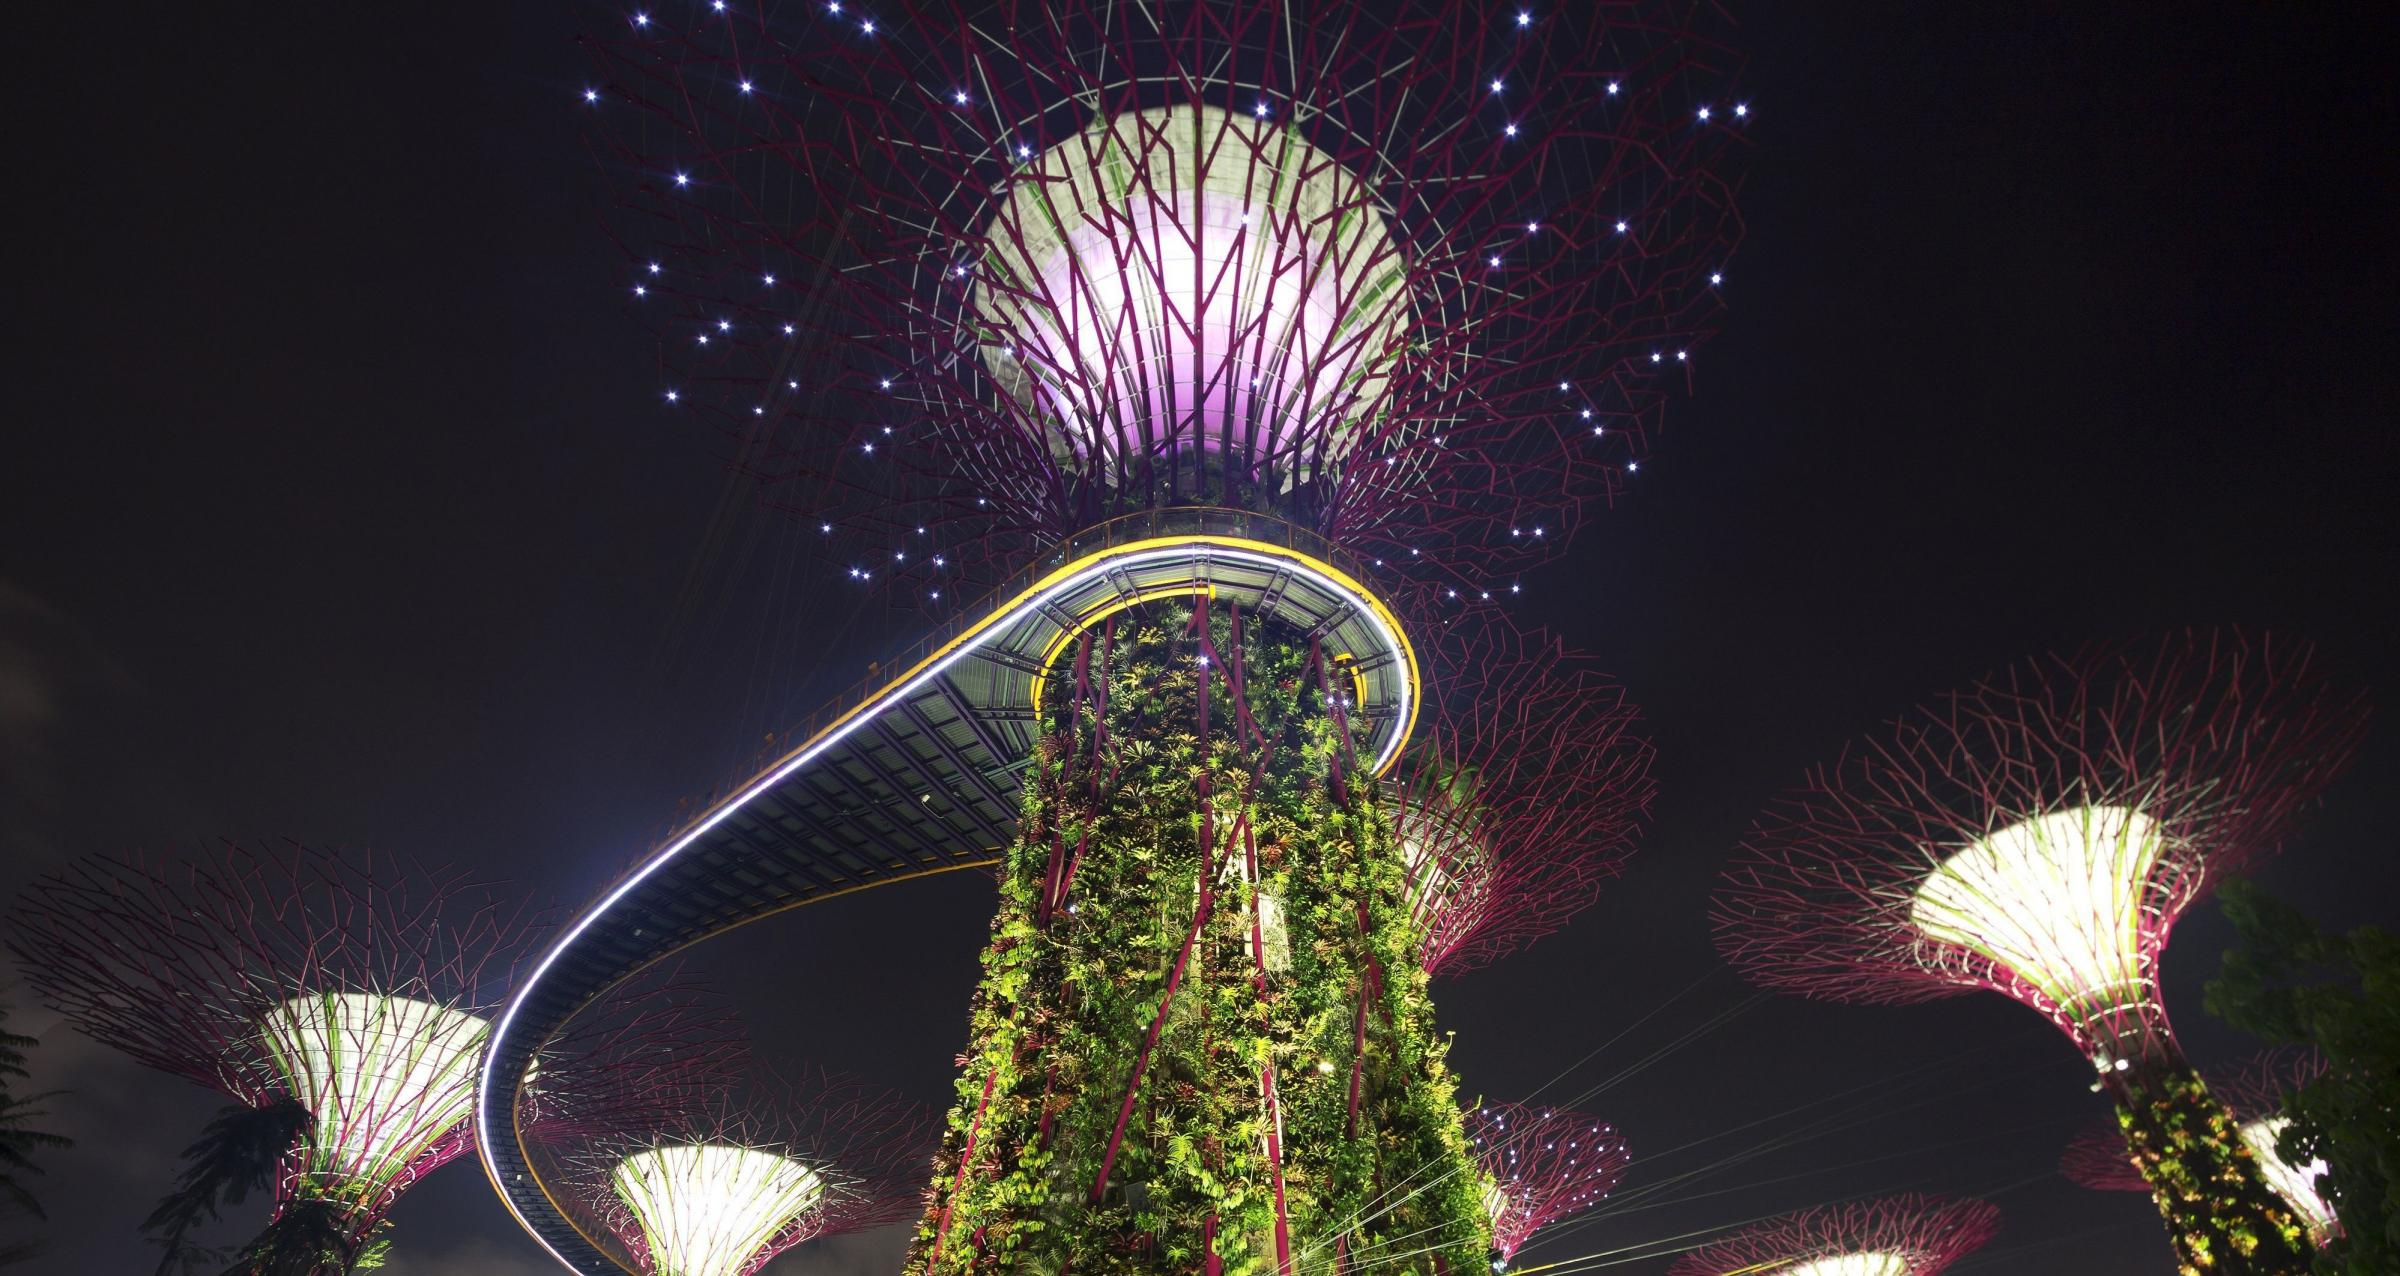 The Gardens by the Bay Supertrees are one of many attractions in the city